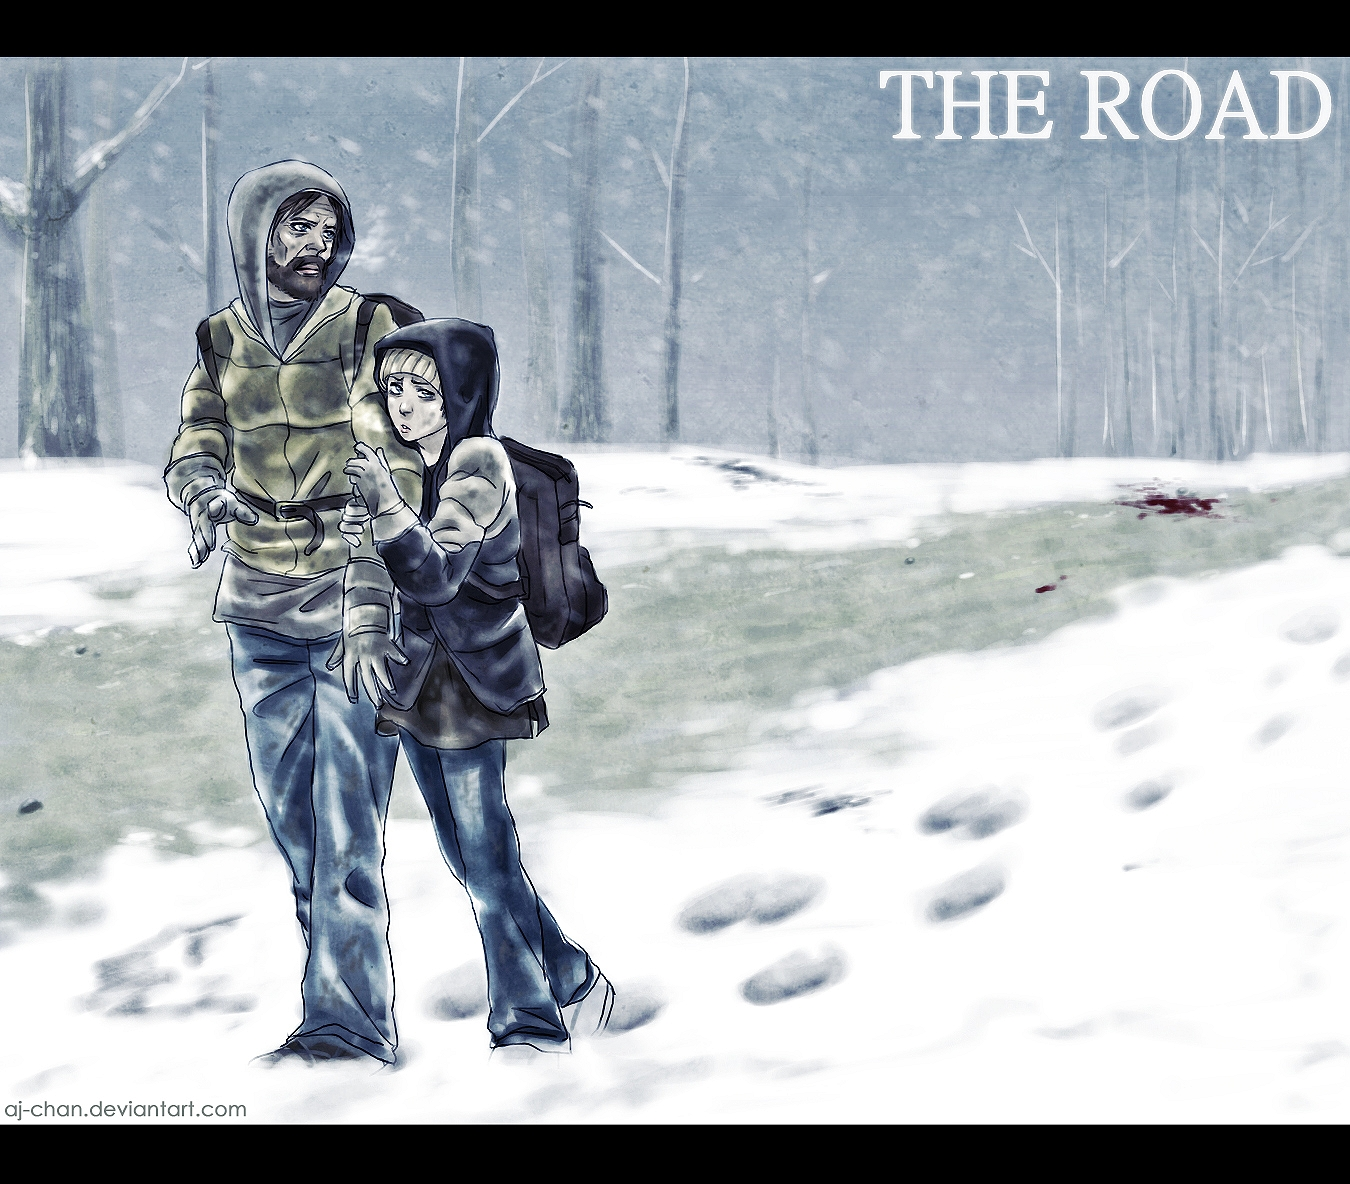 an analysis of the novel the road by cormac mccarthy Cormac mccarthy was born in rhode island on july 20, 1993 to charles joseph and gladys christina mcgrail mccarthy he has two brothers and three sisters.